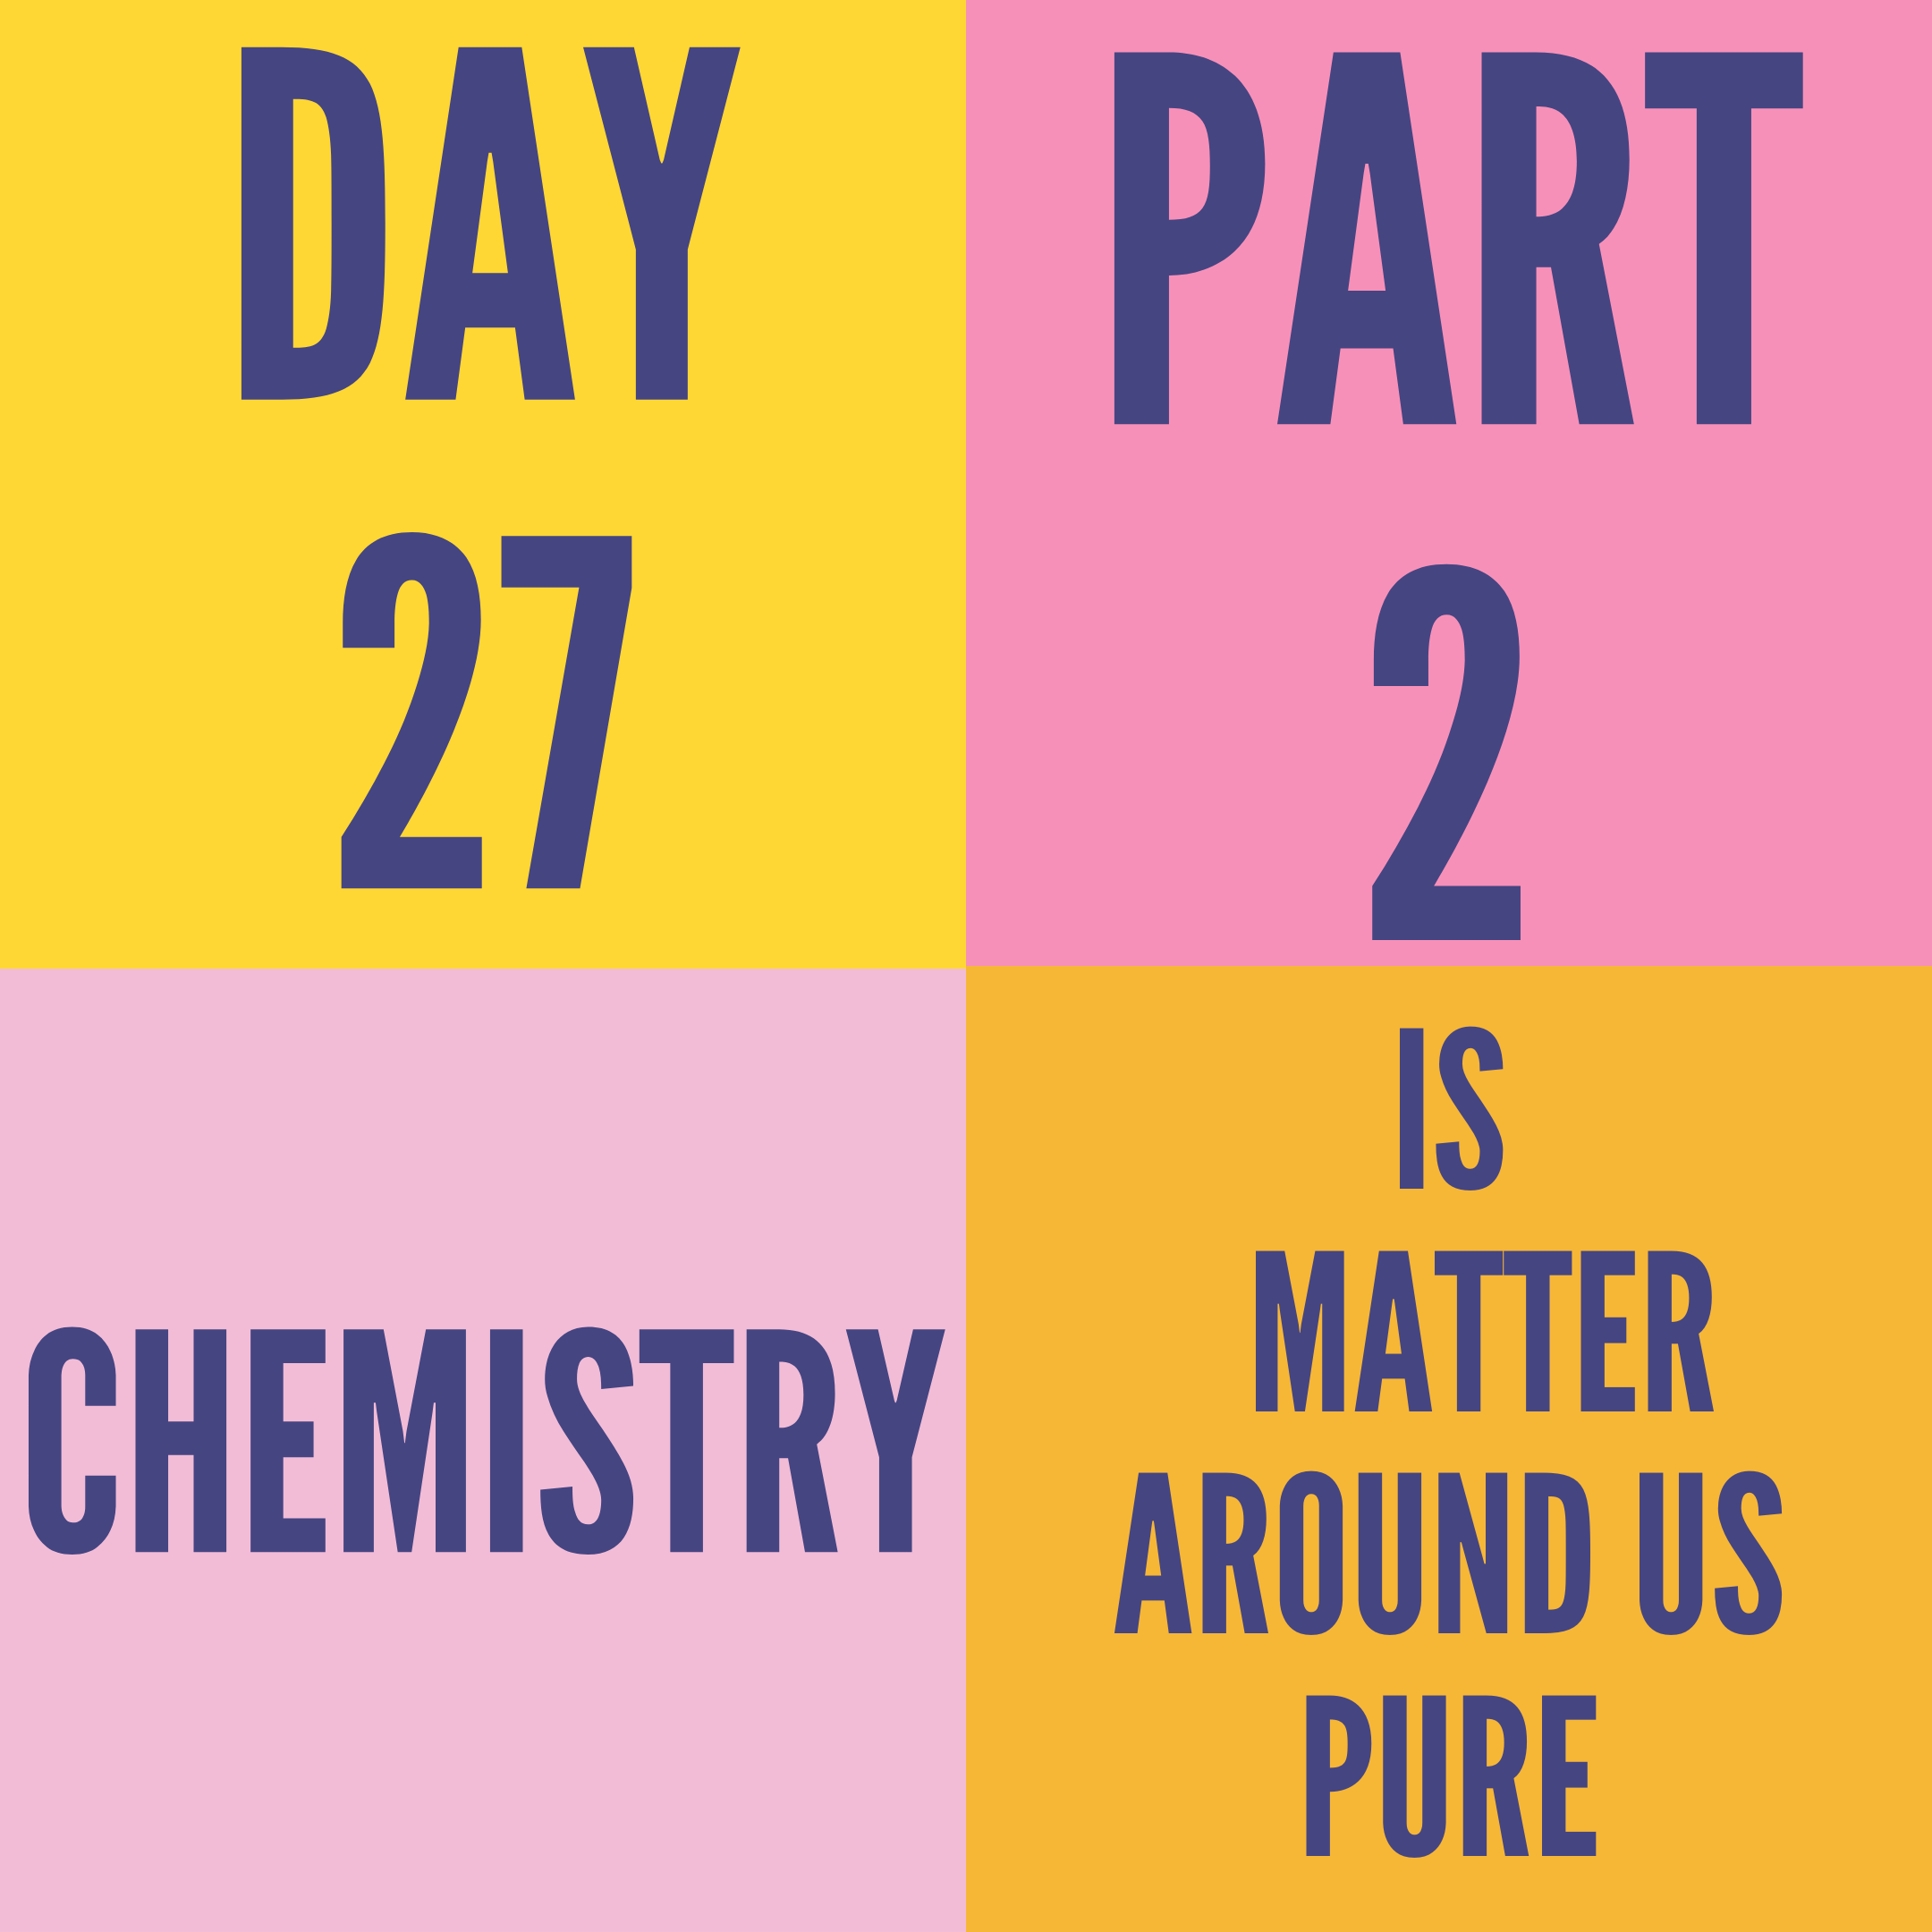 DAY-27 PART-2 IS MATTER AROUND US PURE